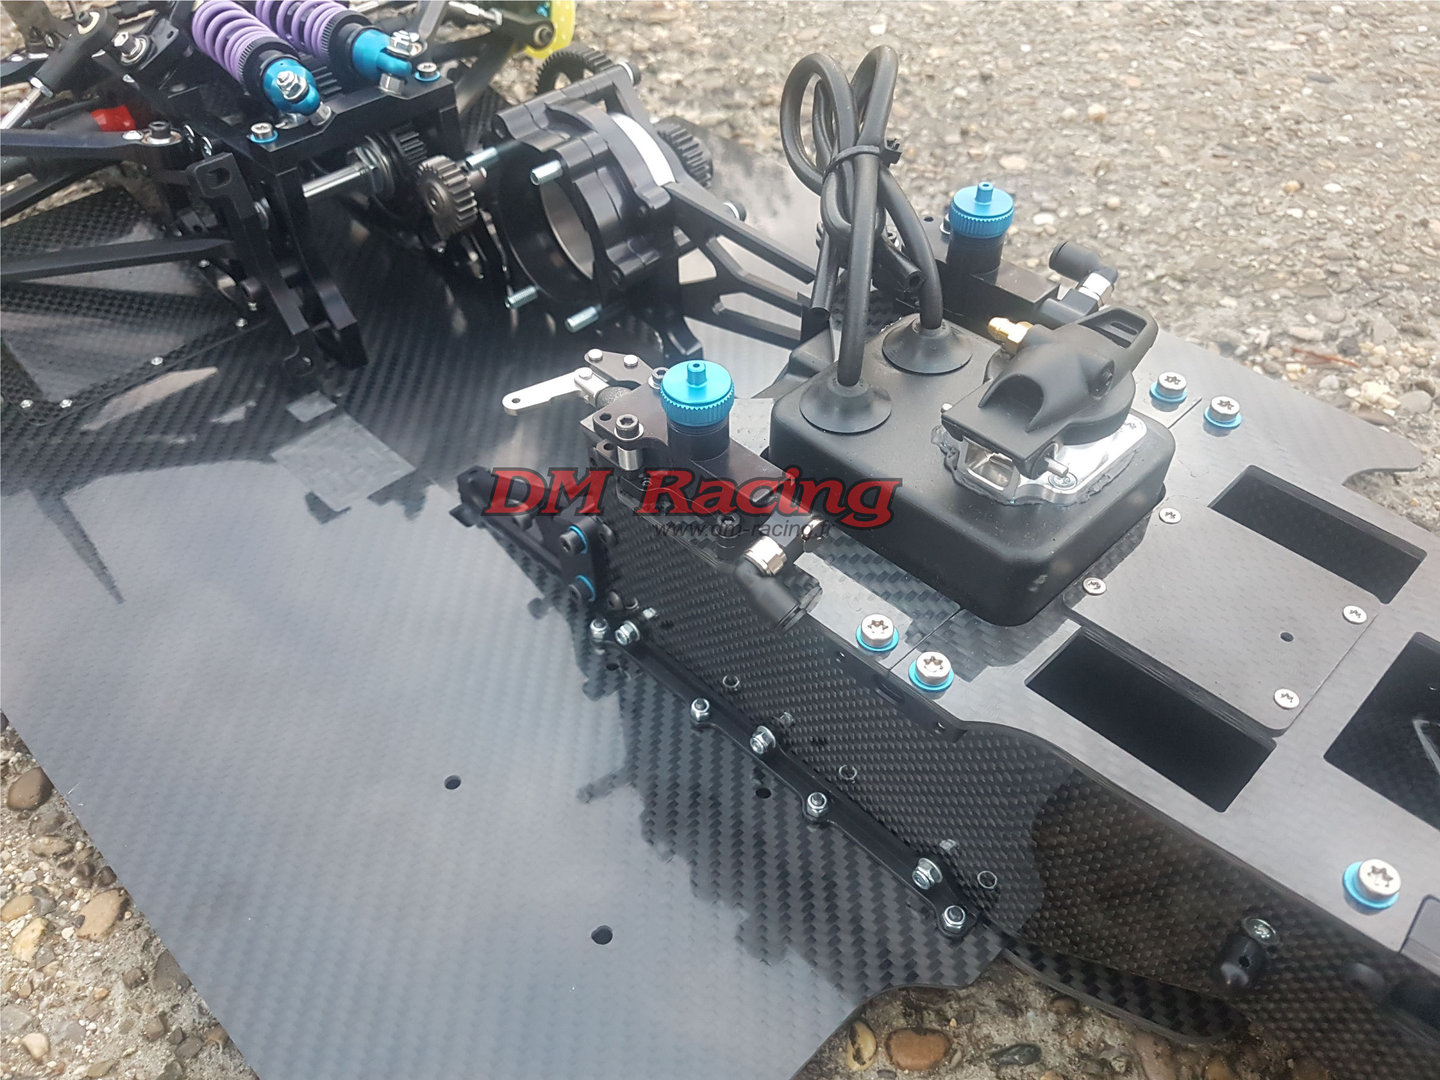 RS5 XF Formula One Chassis kit - DM Racing